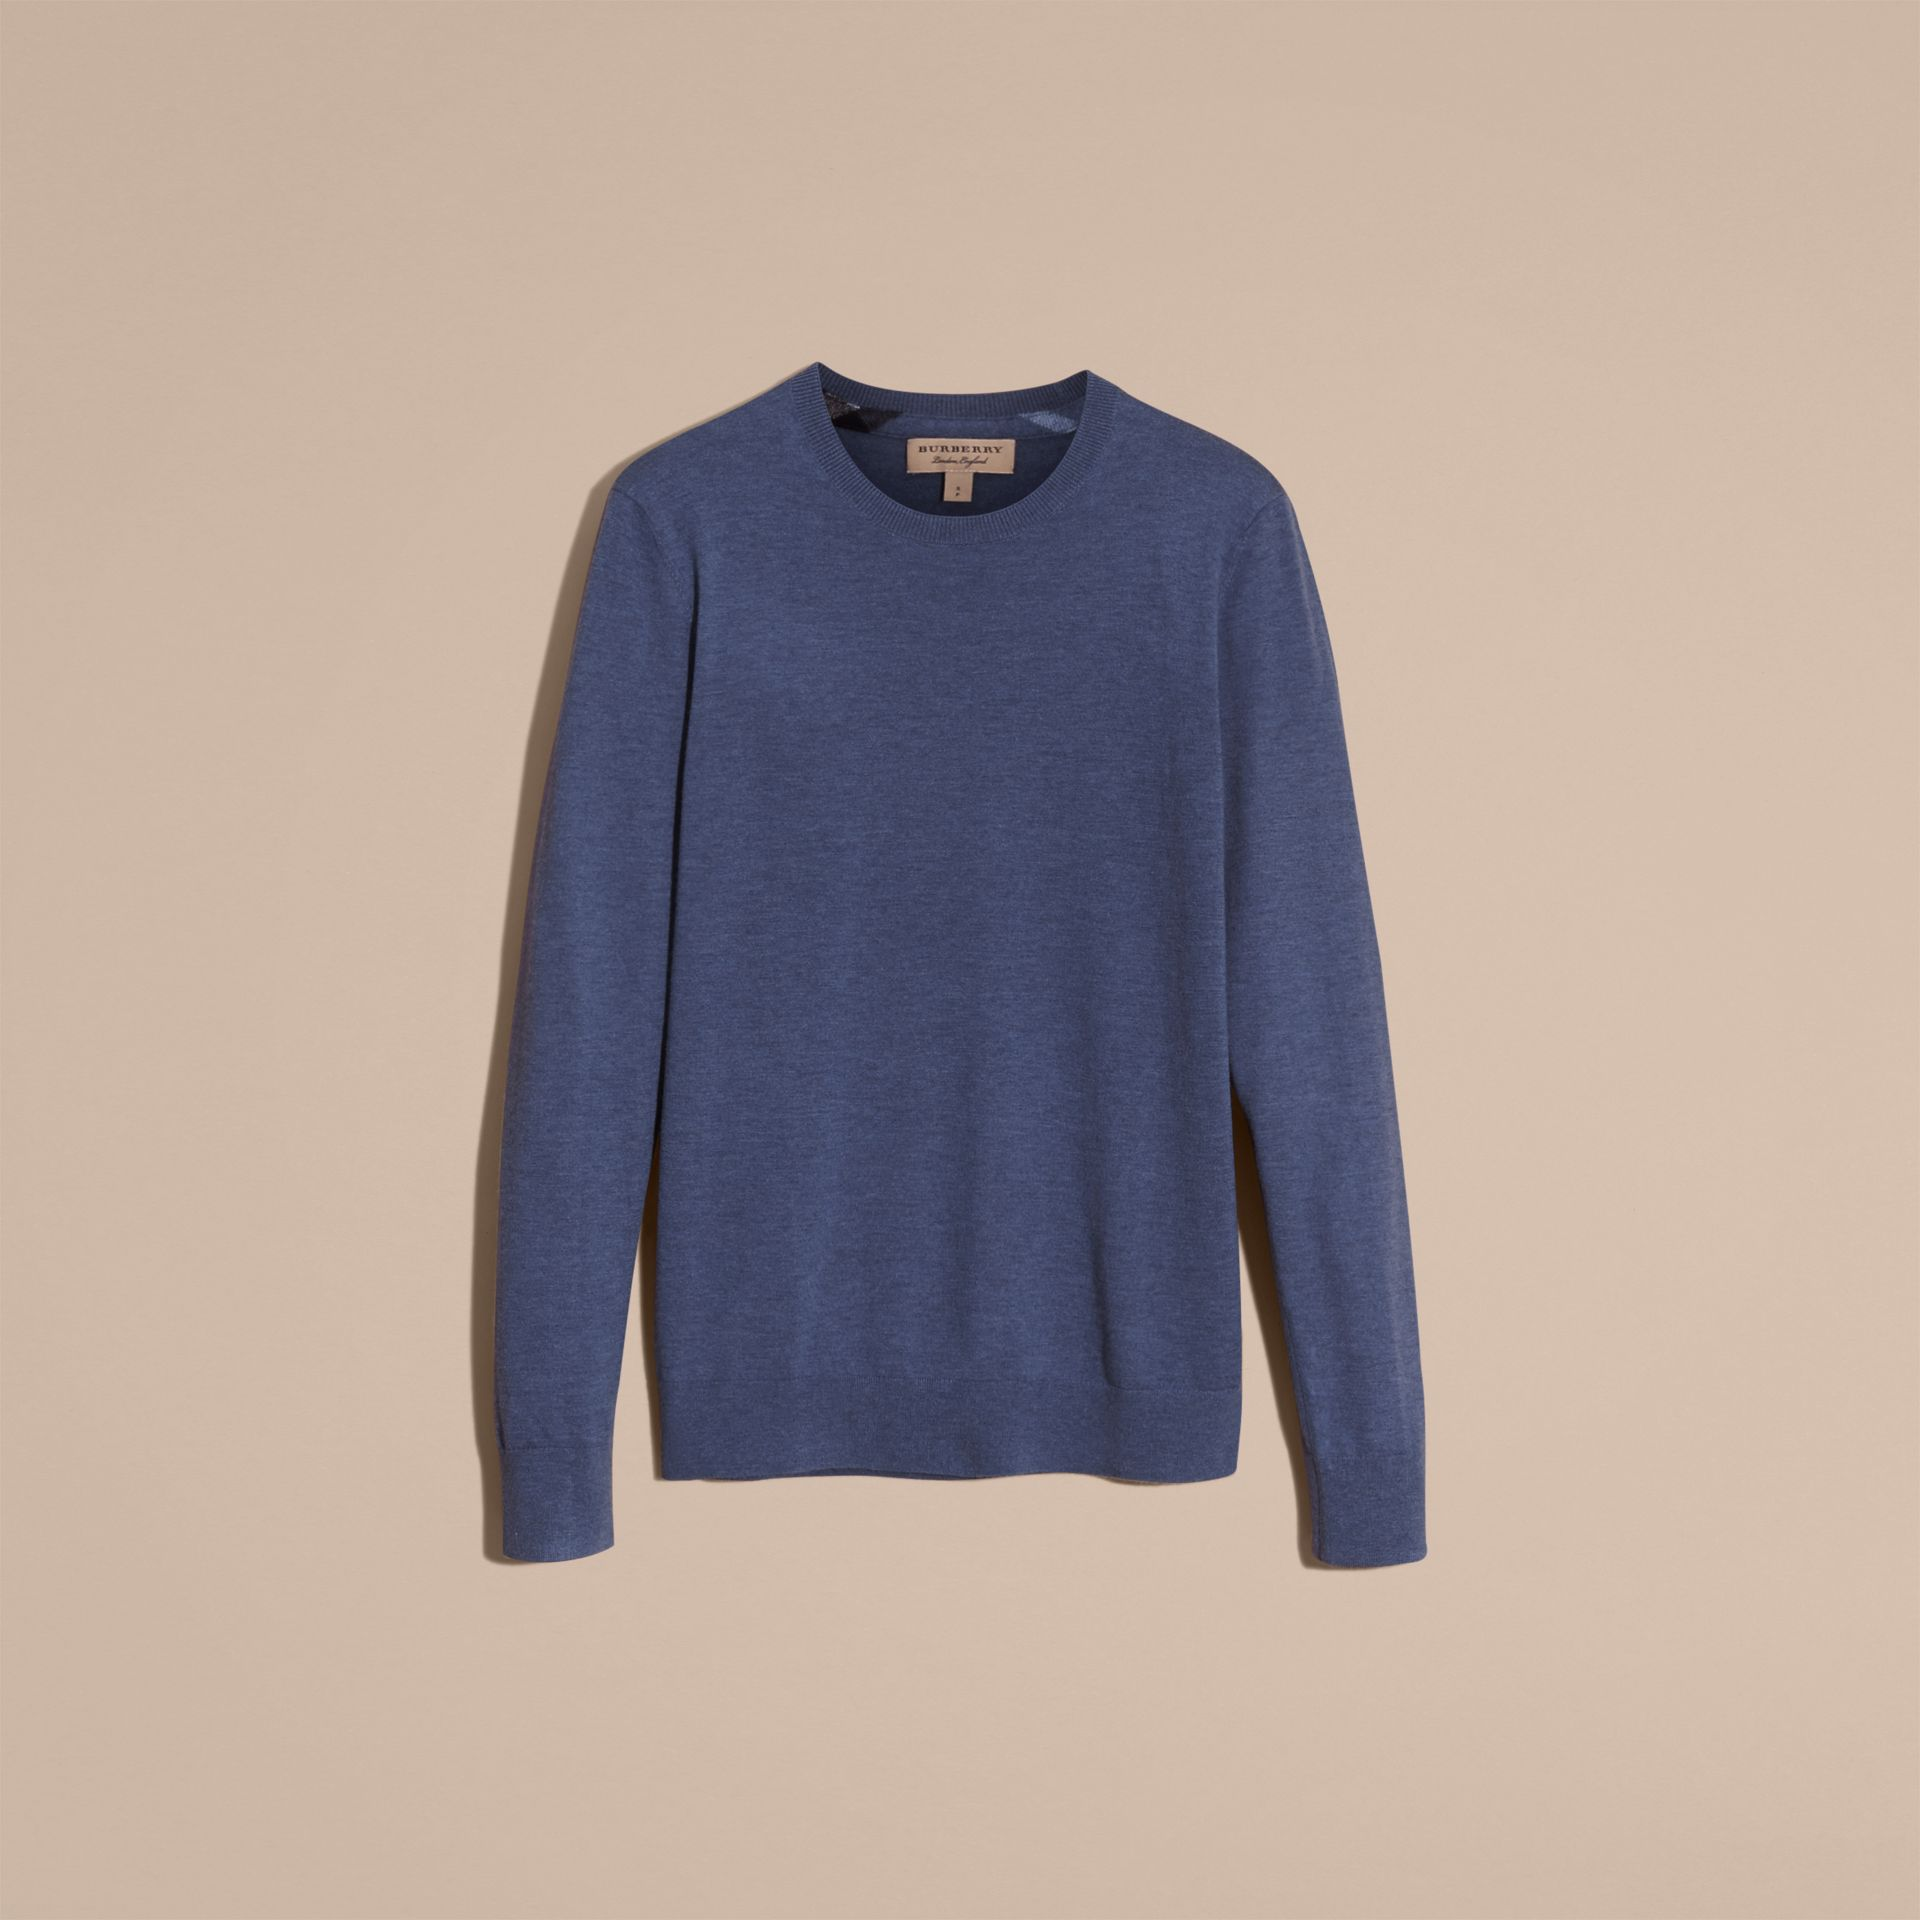 Lightweight Crew Neck Cashmere Sweater with Check Trim in Dusty Blue - Men | Burberry - gallery image 4